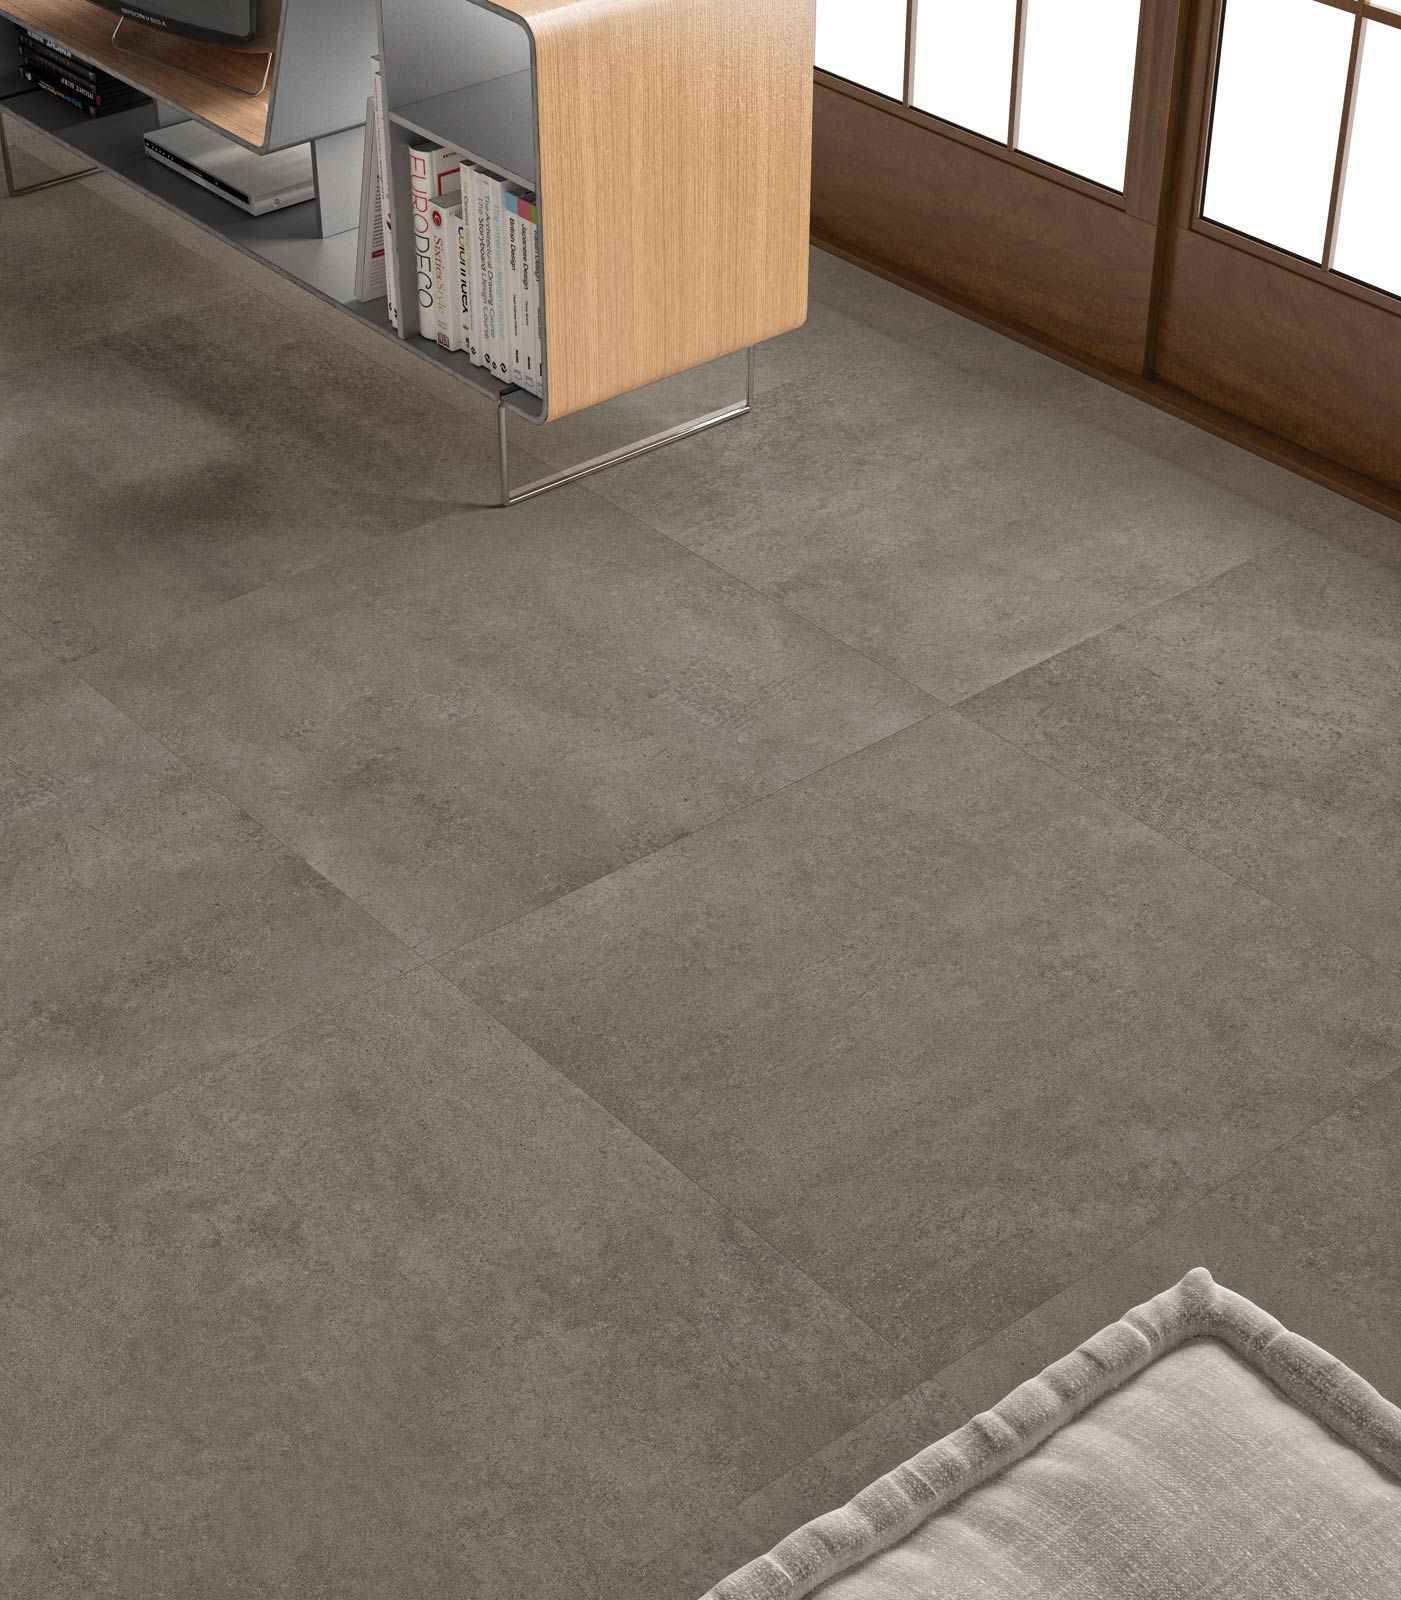 Gres porcellanato effetto legno scuro cerca con google home ceramo concrete look tiles specialists in perth aims to offer the concrete tiles buying community a different concrete looks tiles buying and shopping dailygadgetfo Choice Image